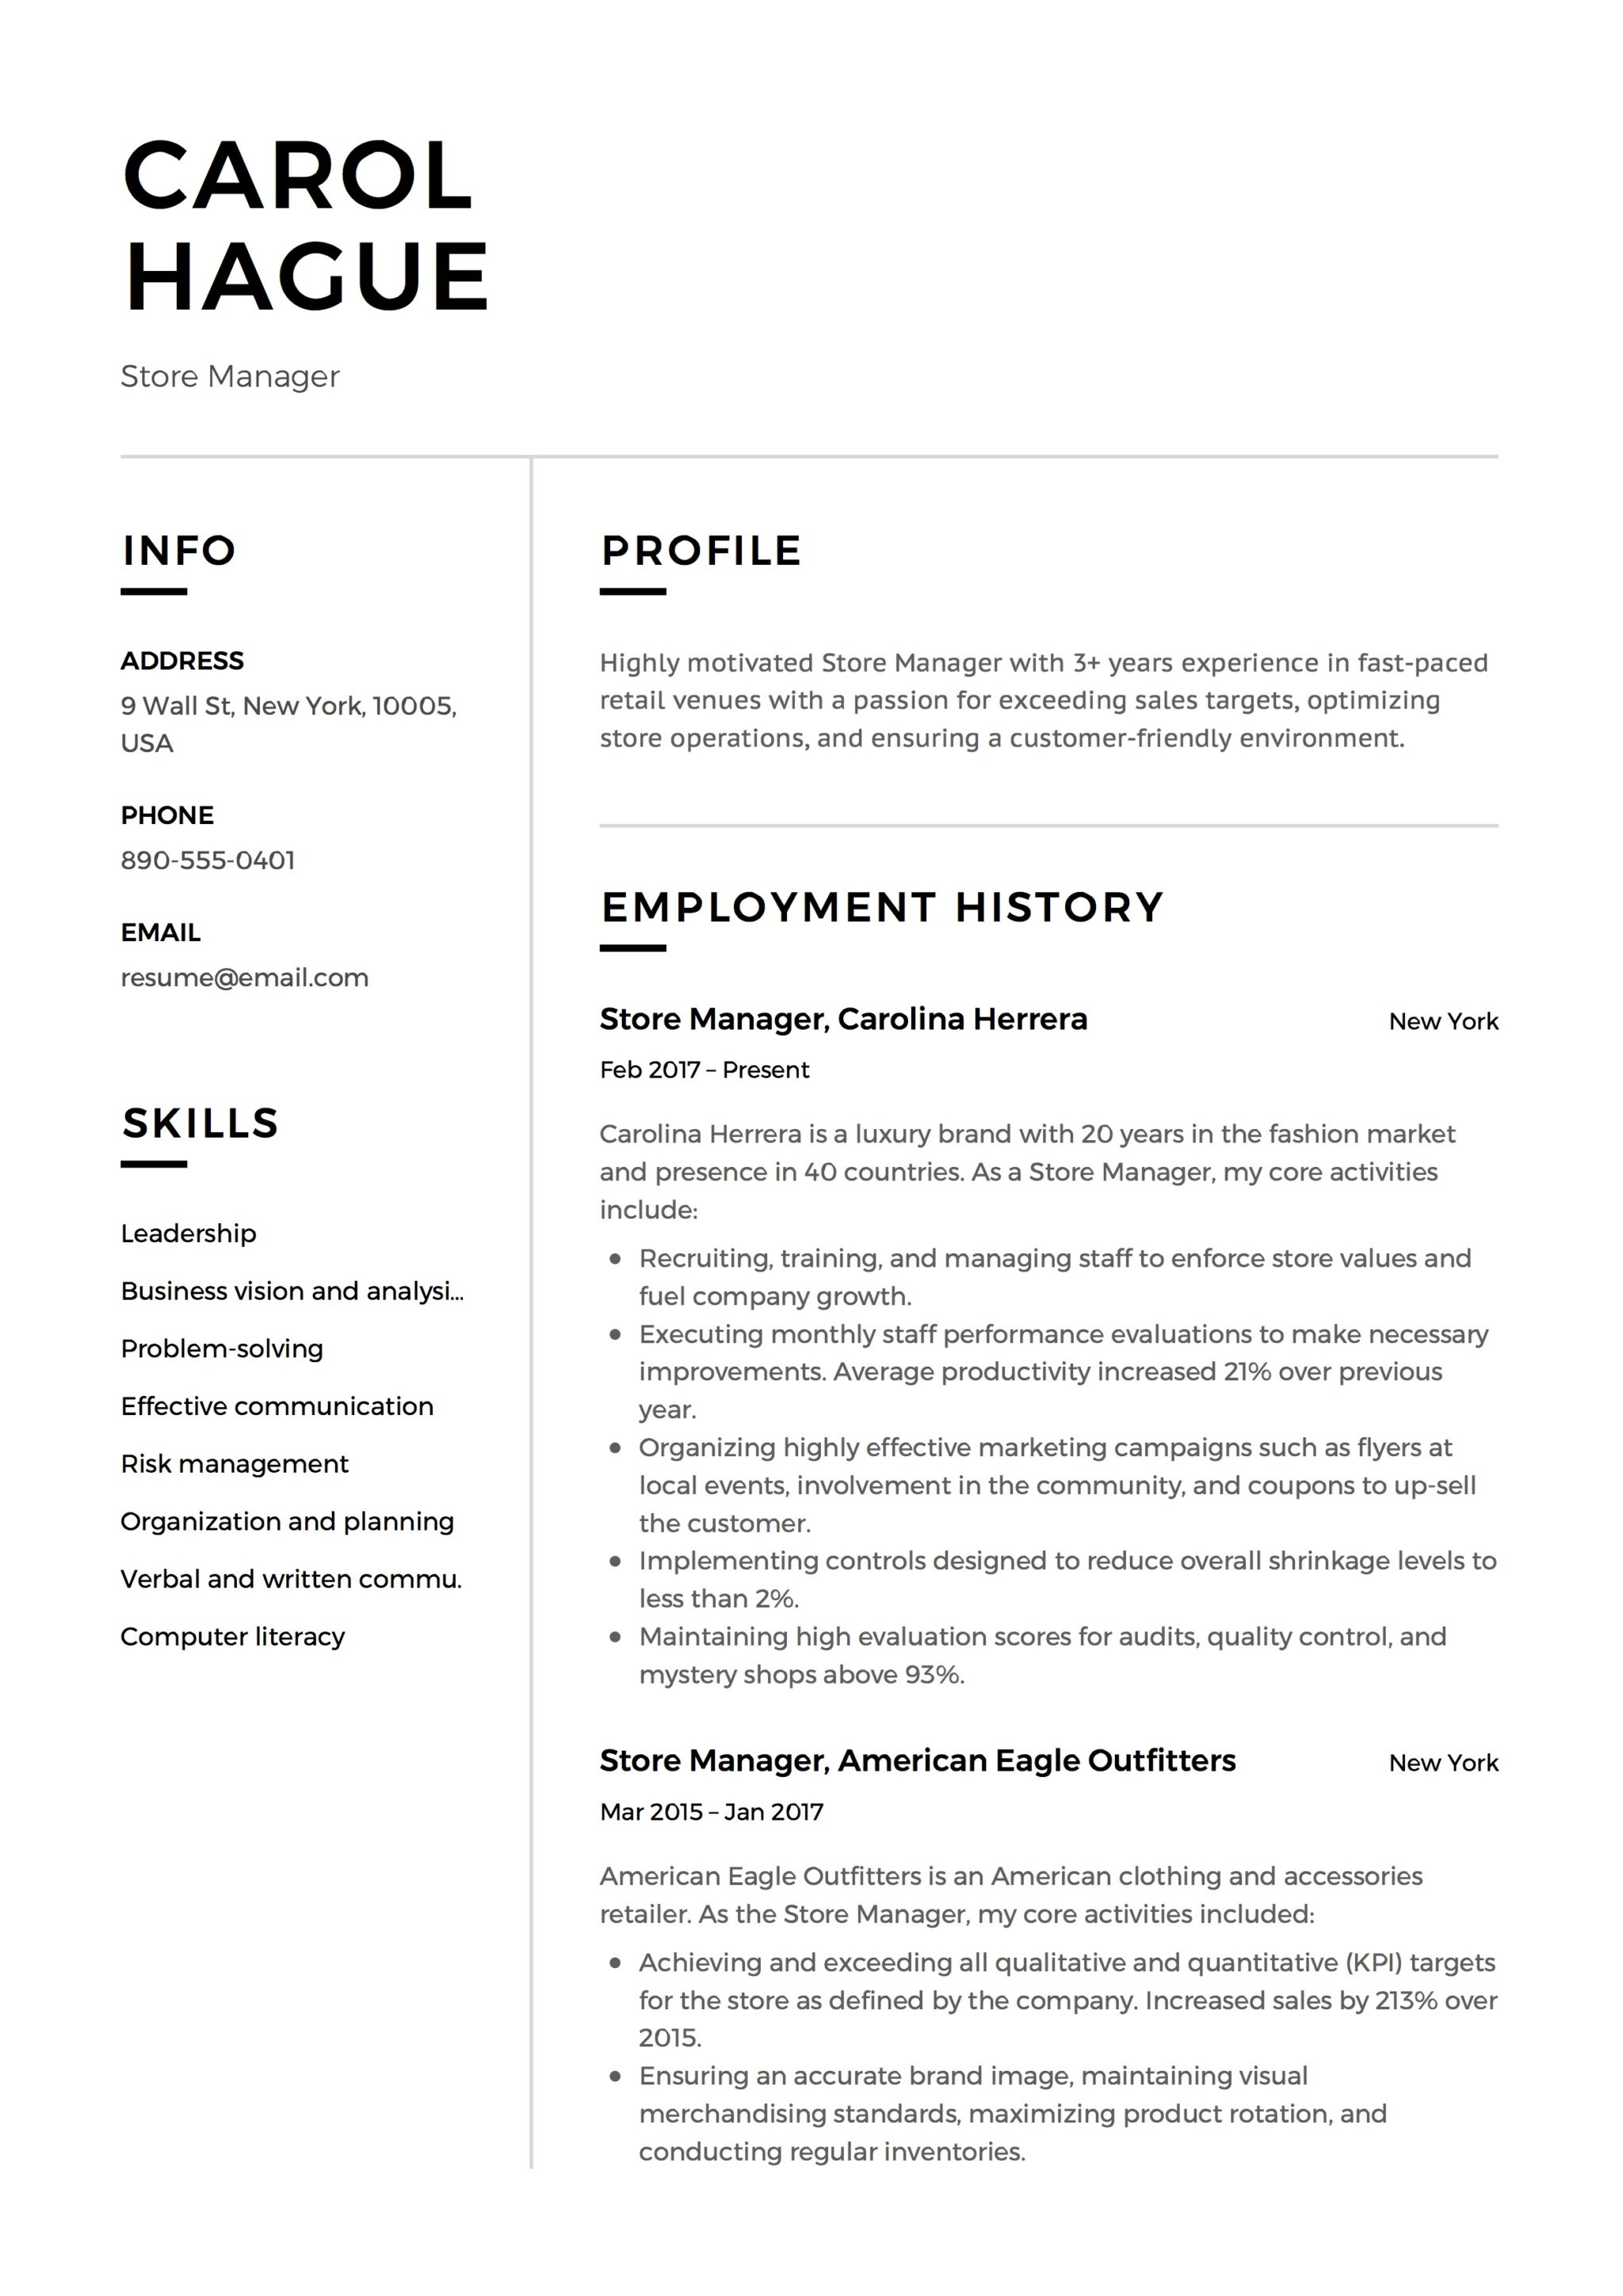 Store Manager Resume Guide & + 12 Resume Samples | PDF | 2019